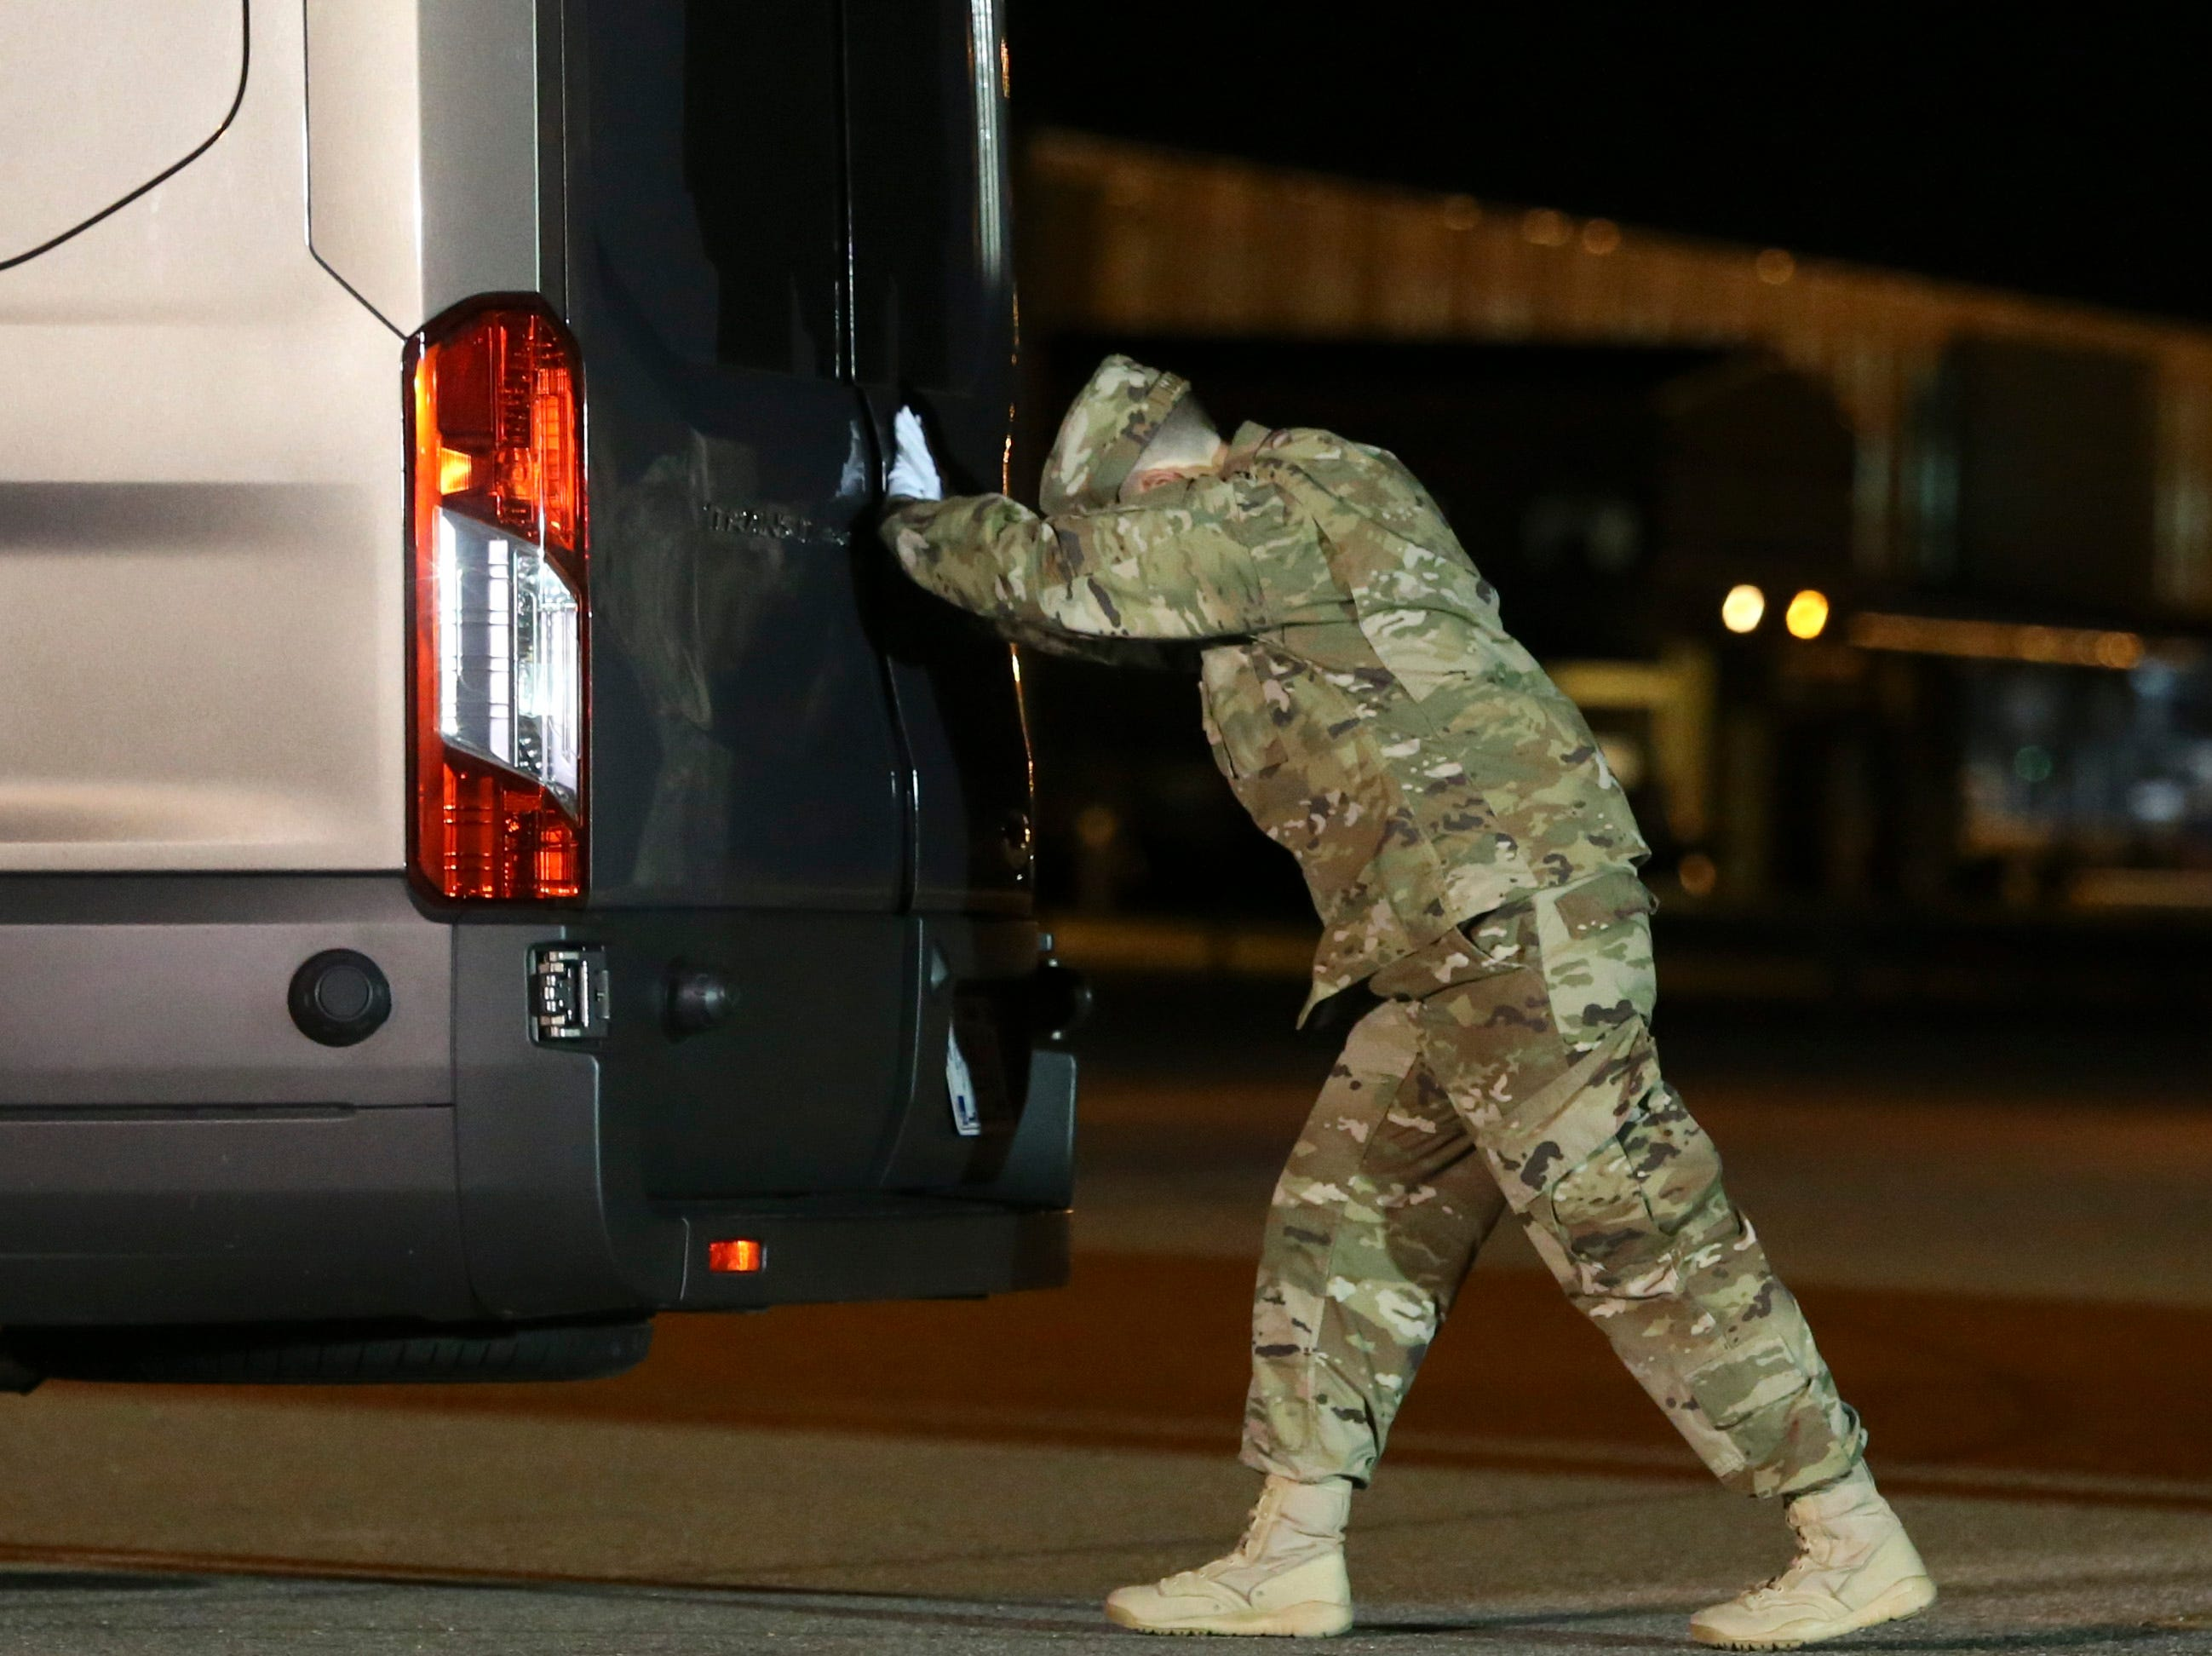 Senior Airman Electa Hazenstab secures the doors to a van that will carry the remains of Marine Staff Sgt. Christopher A. Slutman from a plane to the mortuary at Dover Air Force Base in a solemn process Thursday evening.